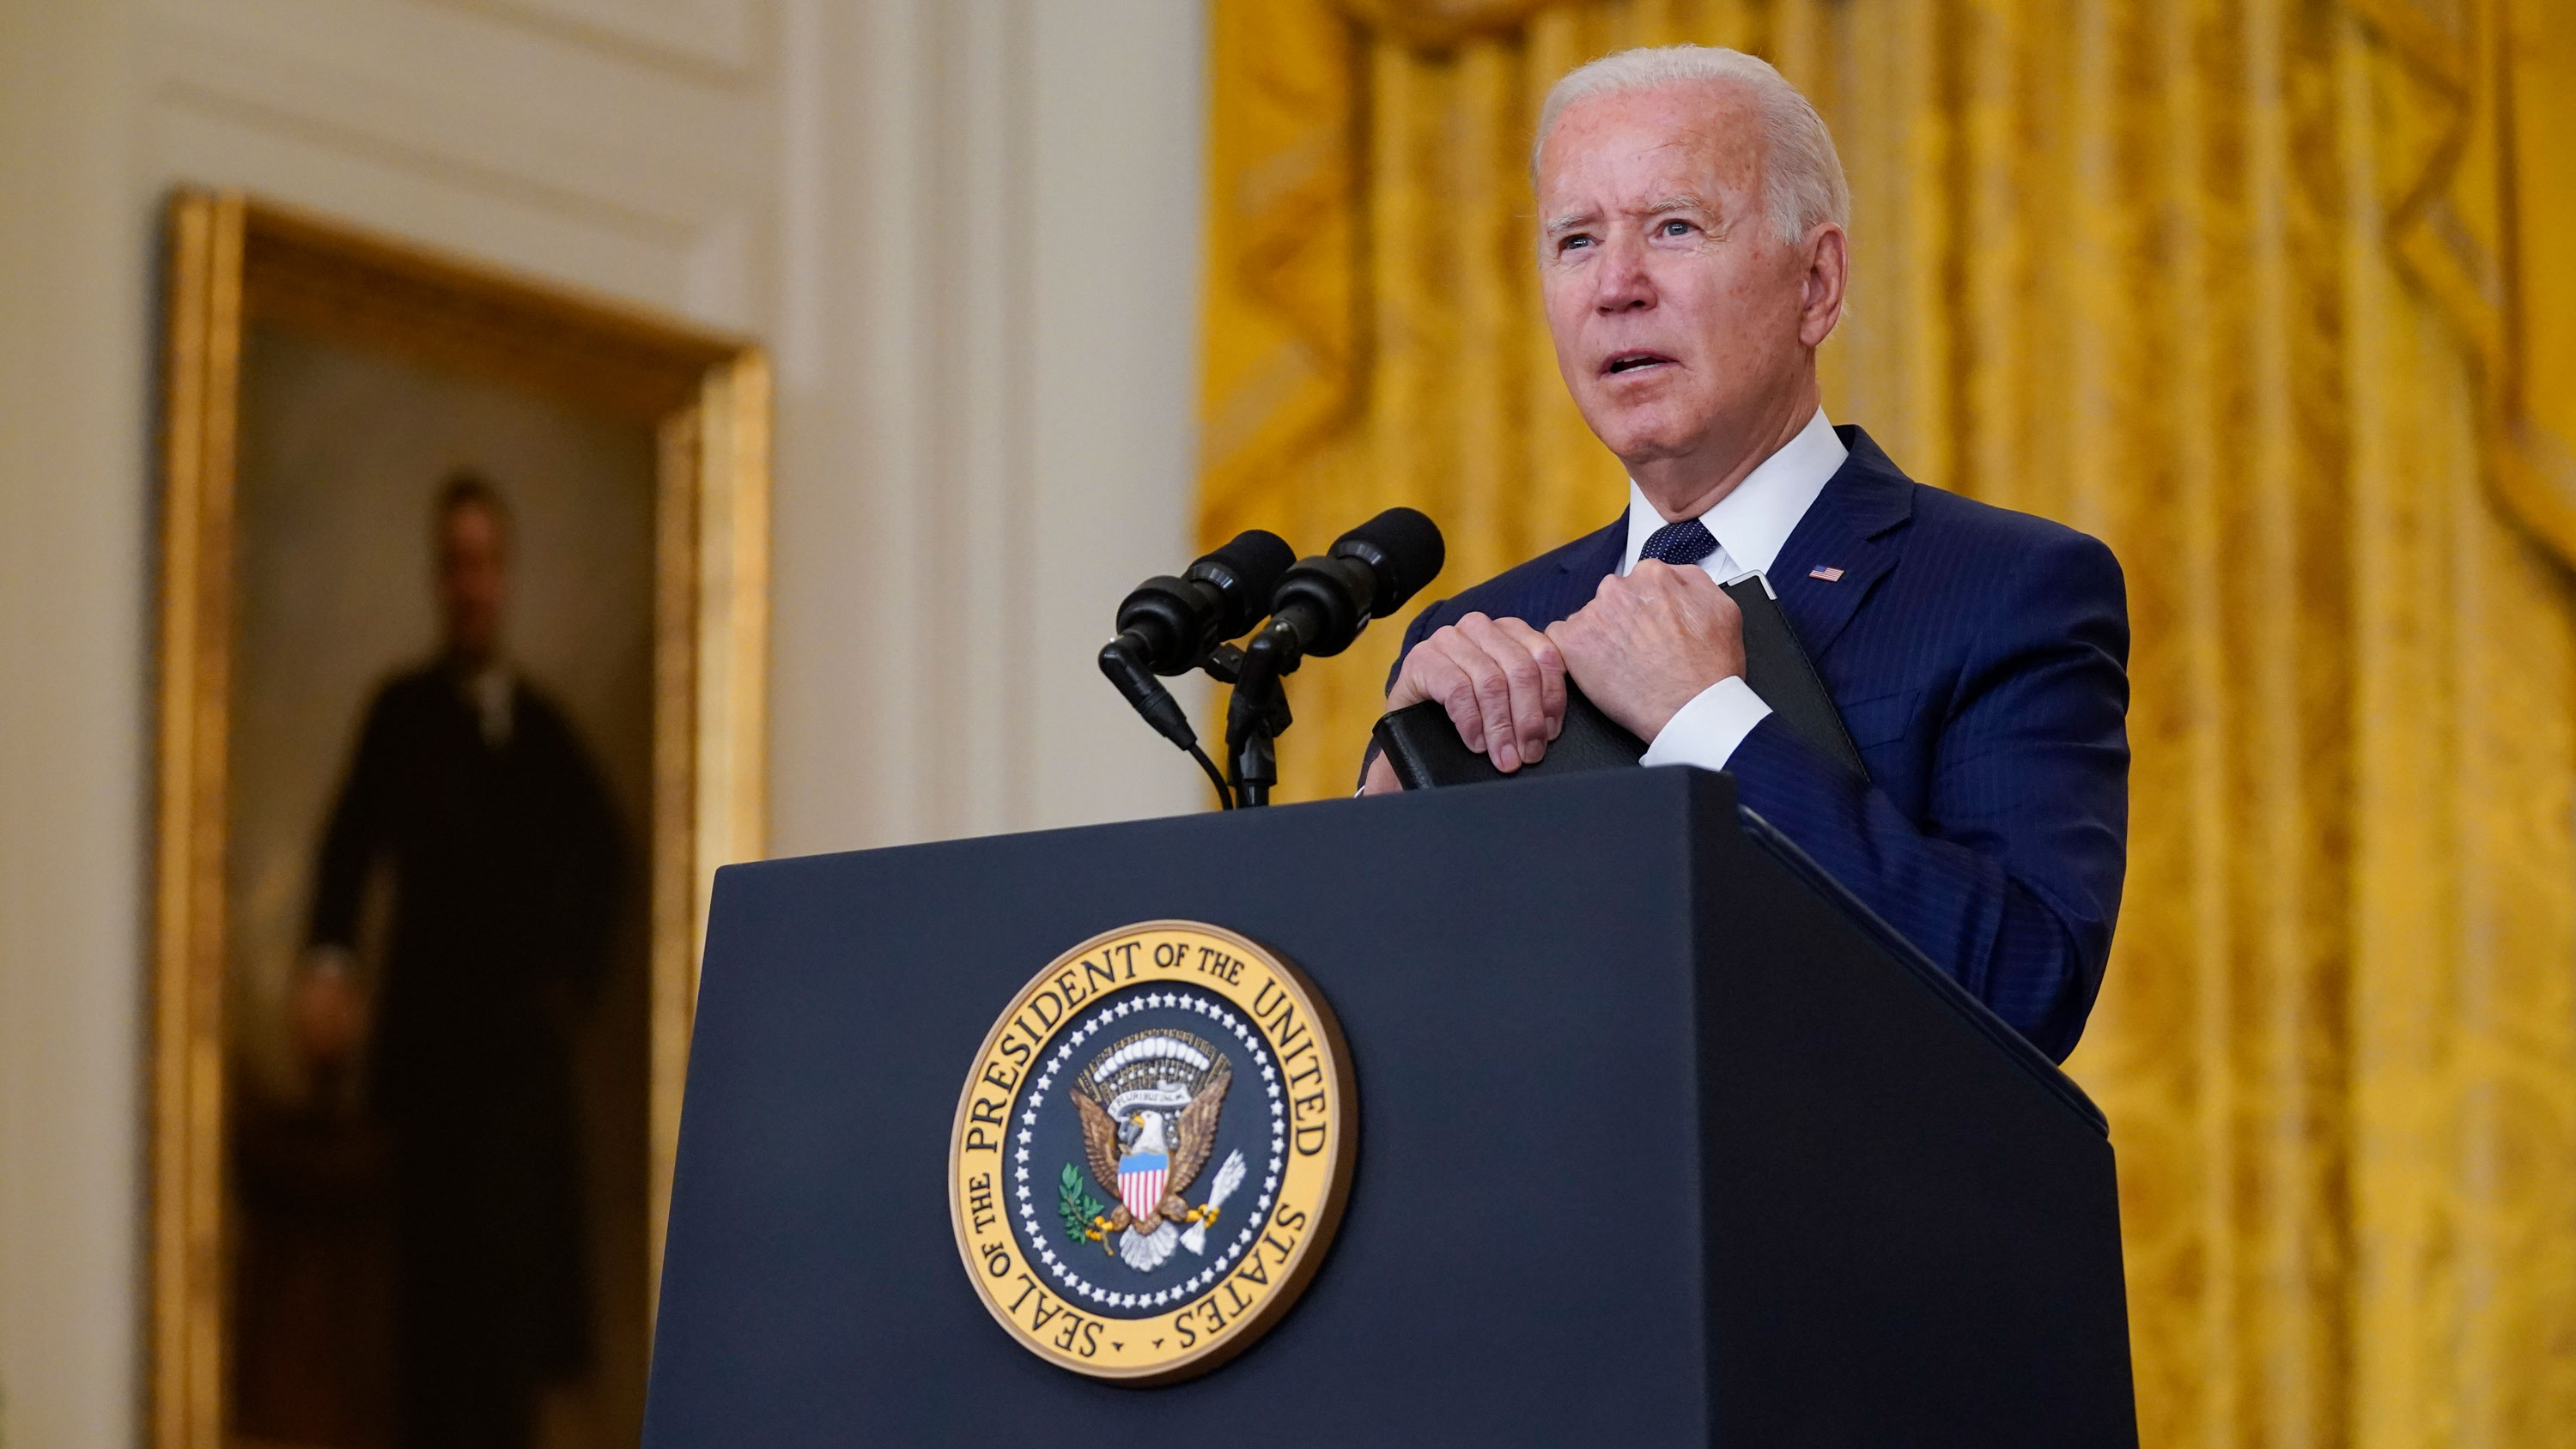 """Biden stands by decision to withdraw from Afghanistan: """"It was time to end a 20-year war"""""""